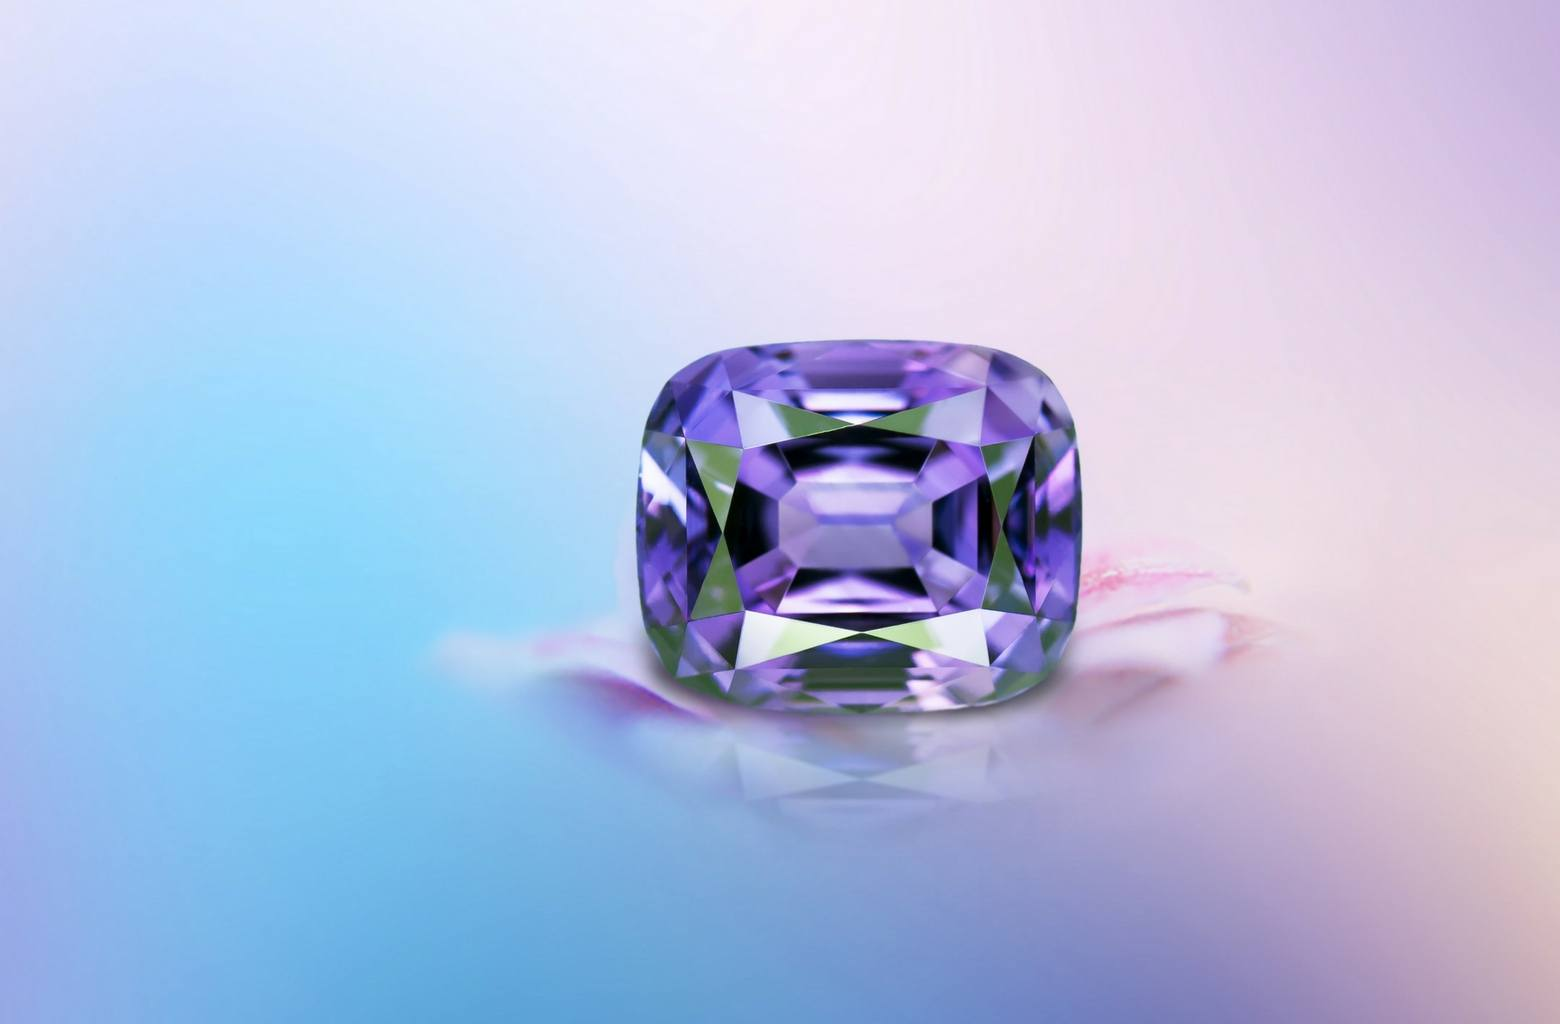 17 carat cushion cut Amethyst from Brazil